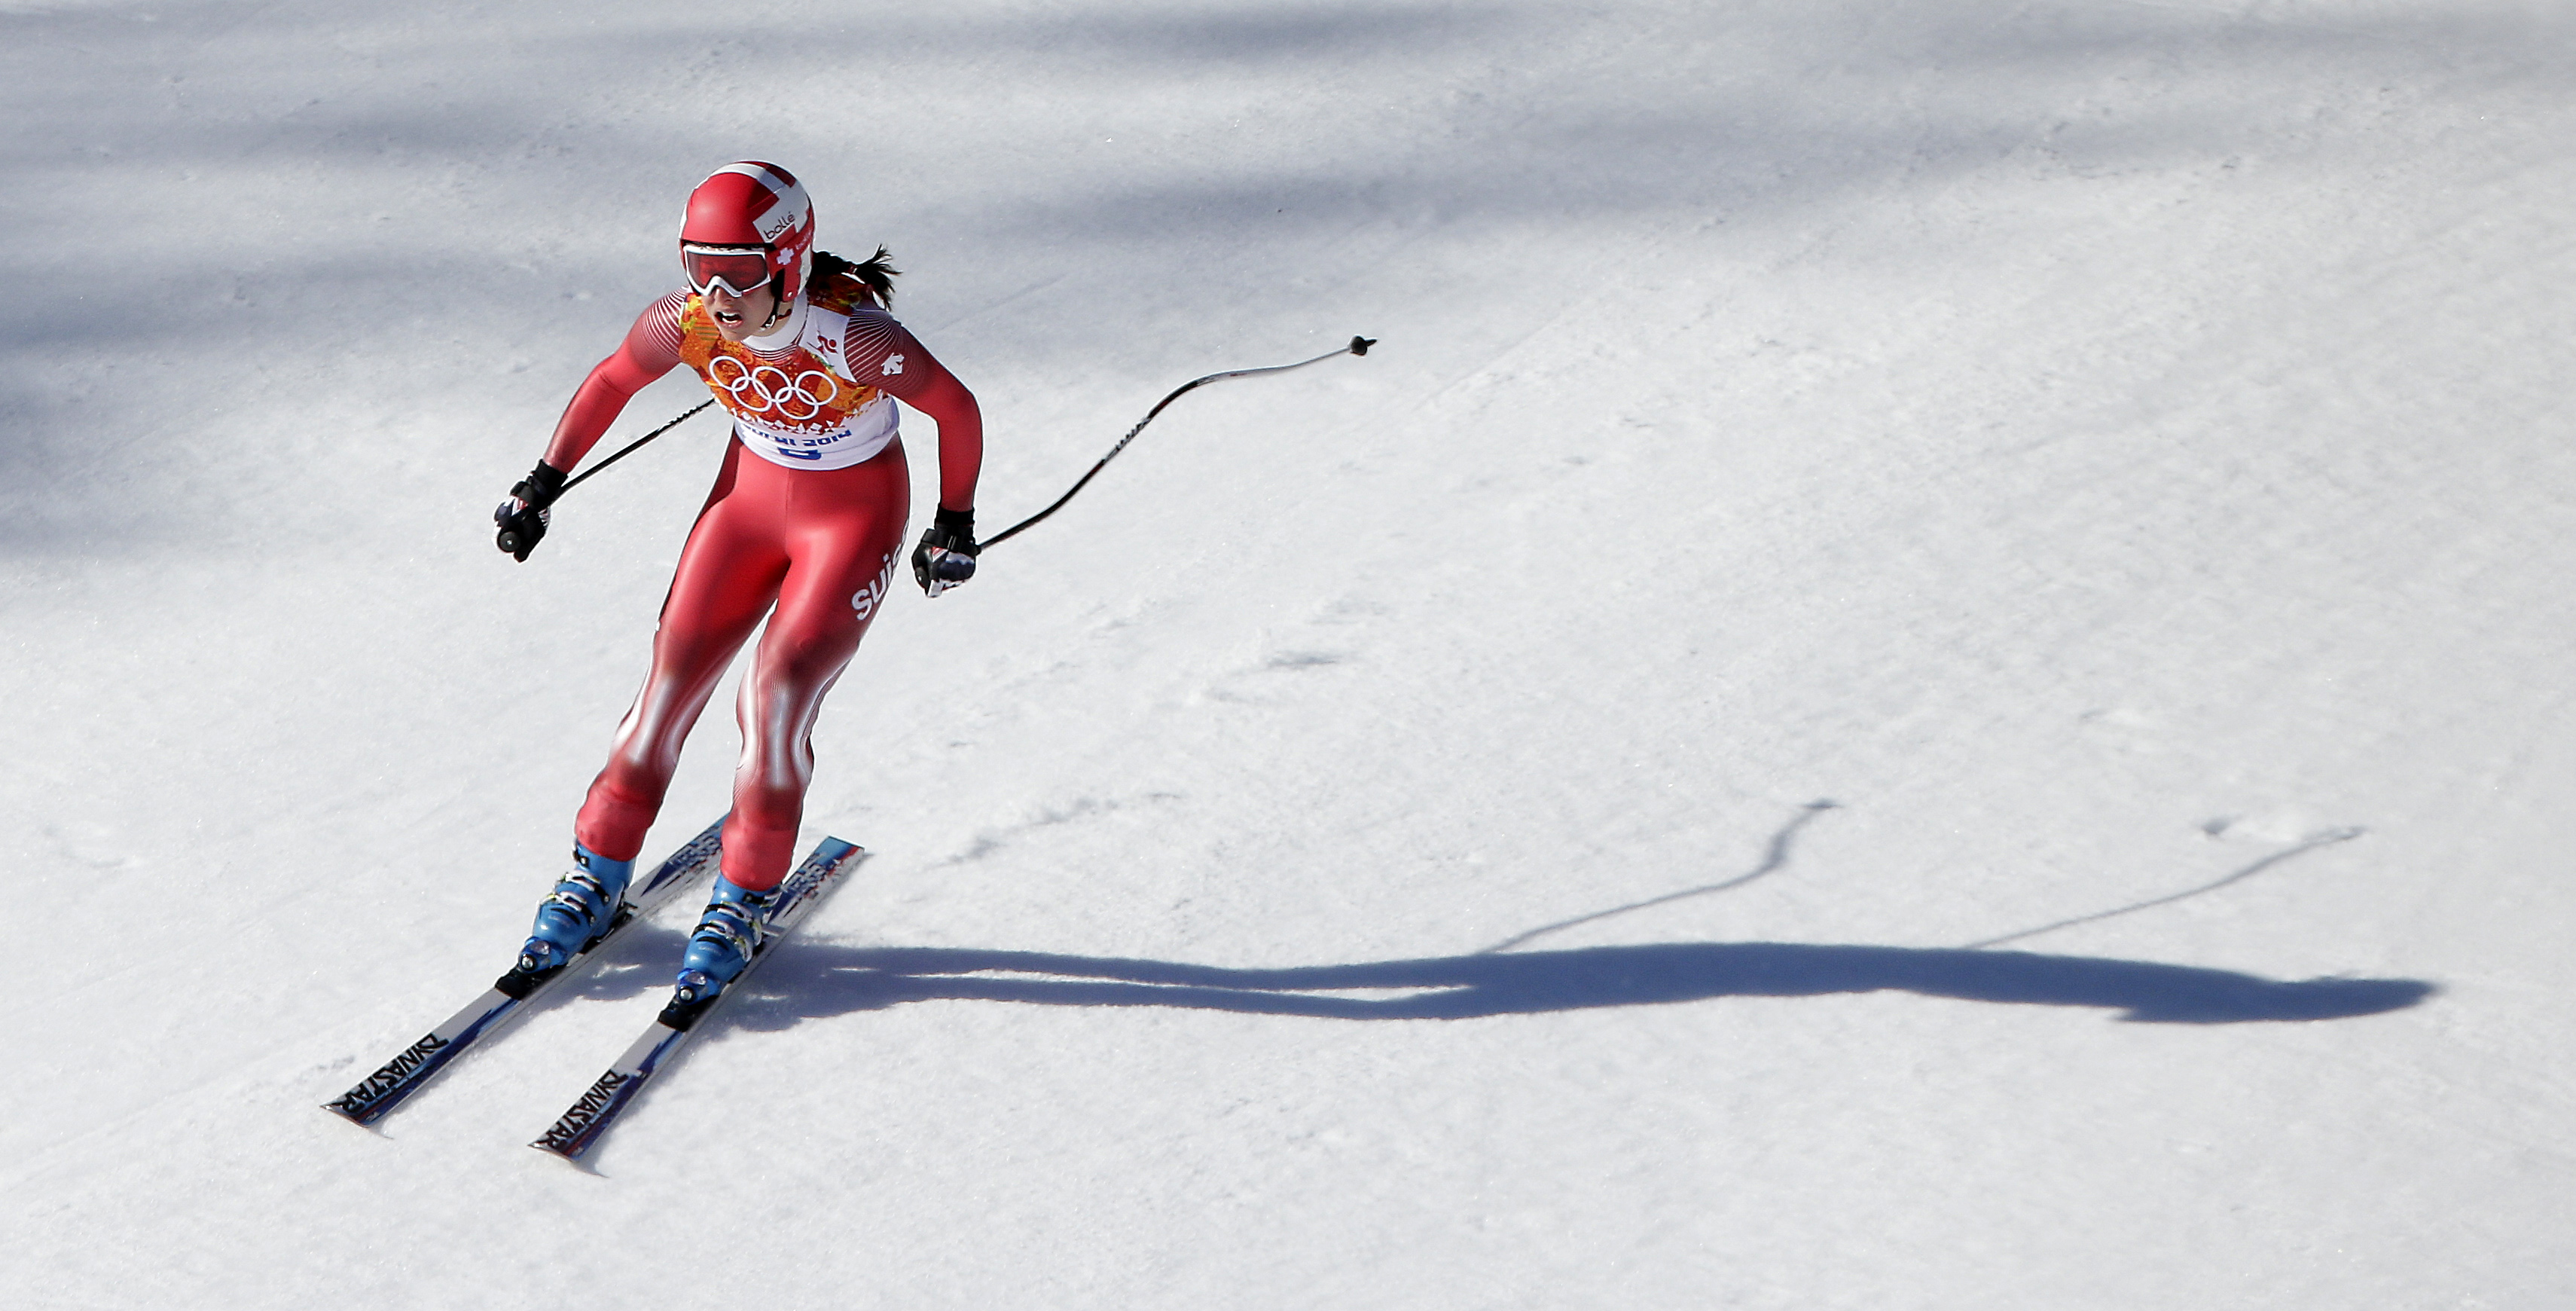 Gold medalist Switzerland's Dominique Gisin competes during the women's downhill at the 2014 Winter Olympics, Wednesday, Feb. 12, 2014, in Krasnaya Polyana, Russia. (AP Photo/Charlie Riedel)